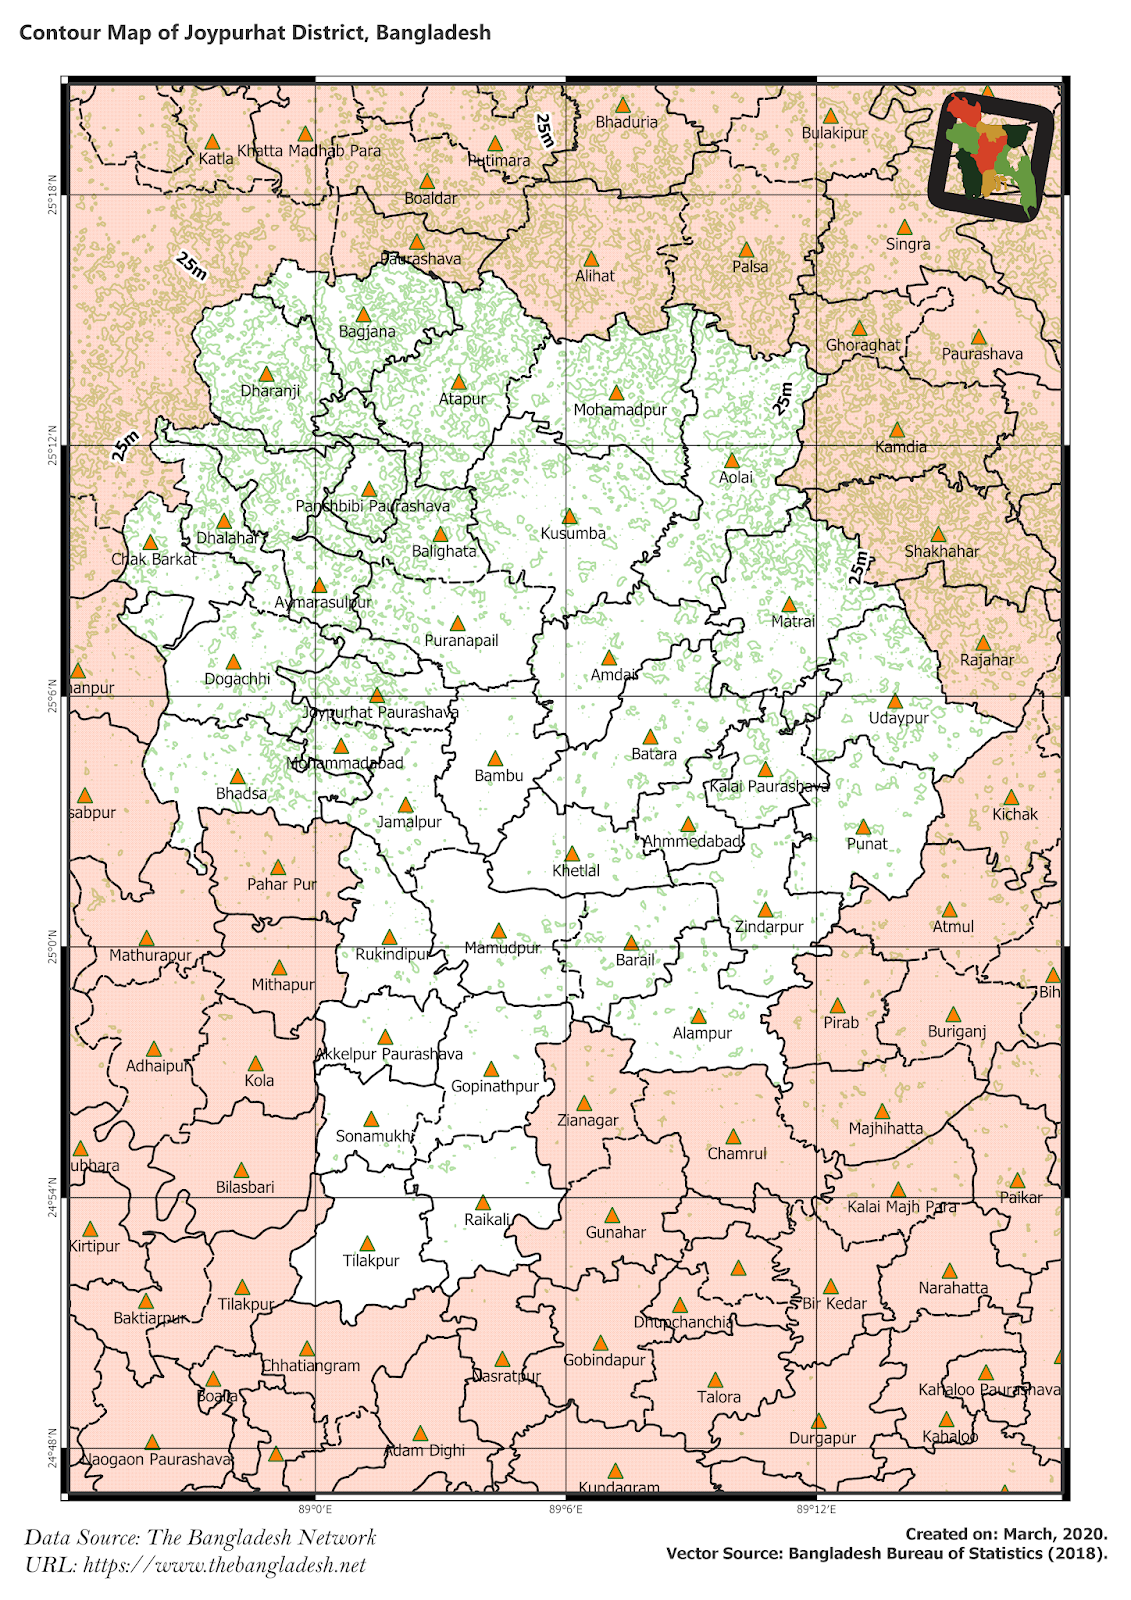 Elevation Map of Joypurhat District of Bangladesh